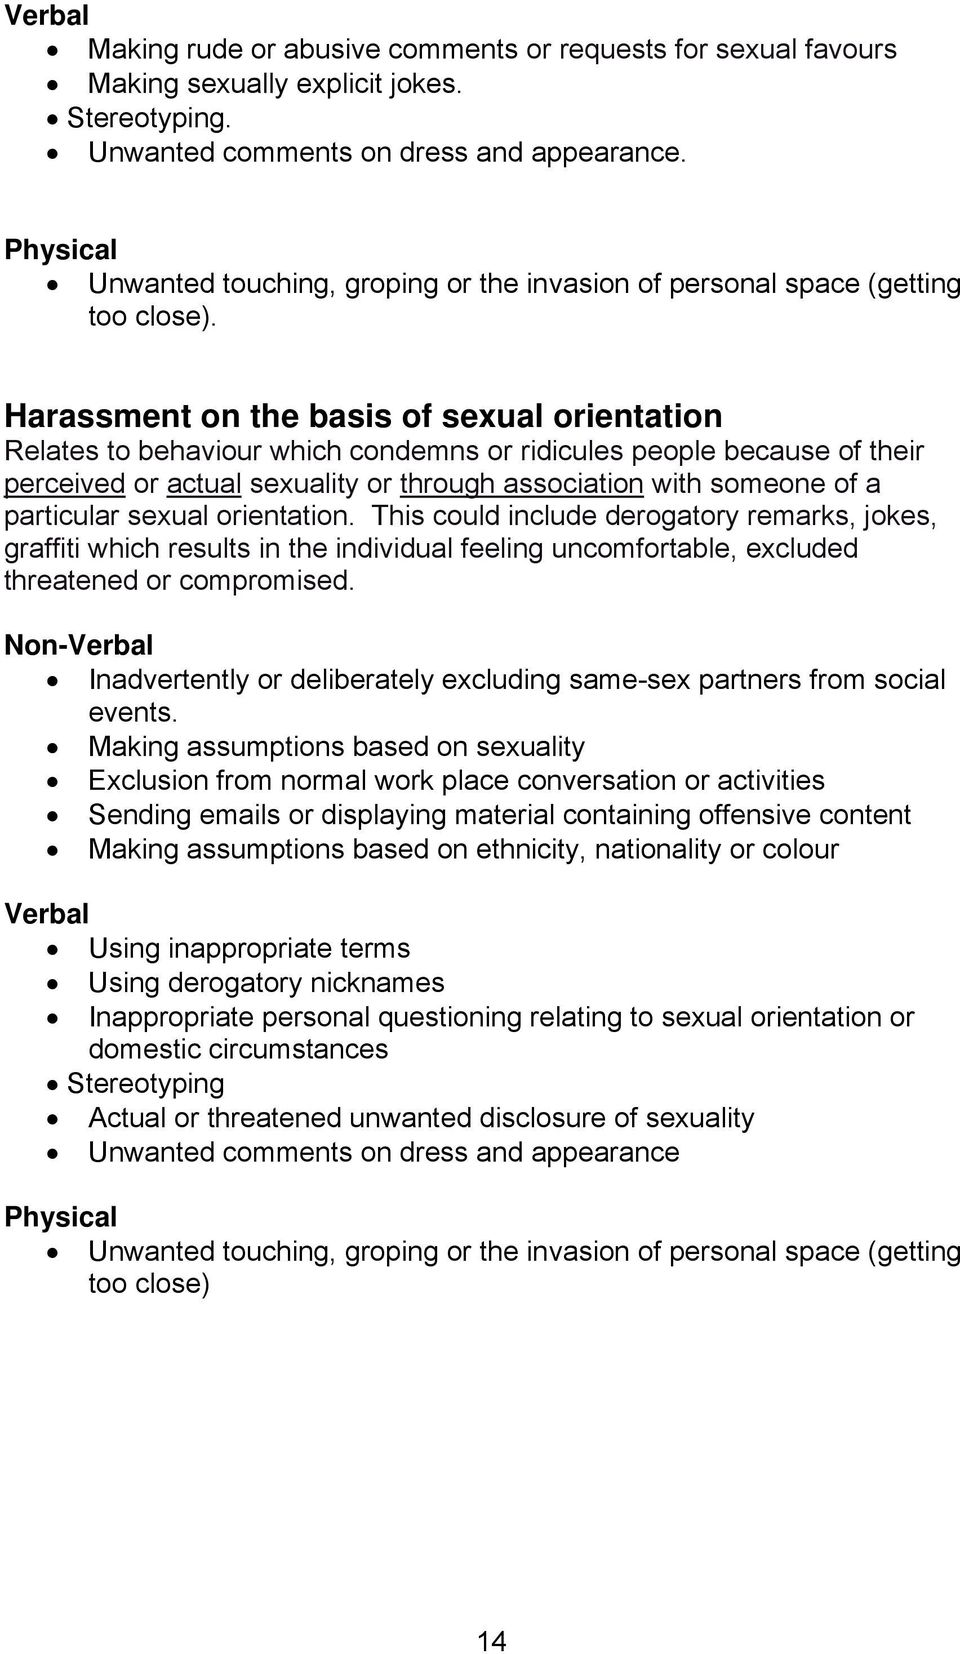 Harassment on the basis of sexual orientation Relates to behaviour which condemns or ridicules people because of their perceived or actual sexuality or through association with someone of a